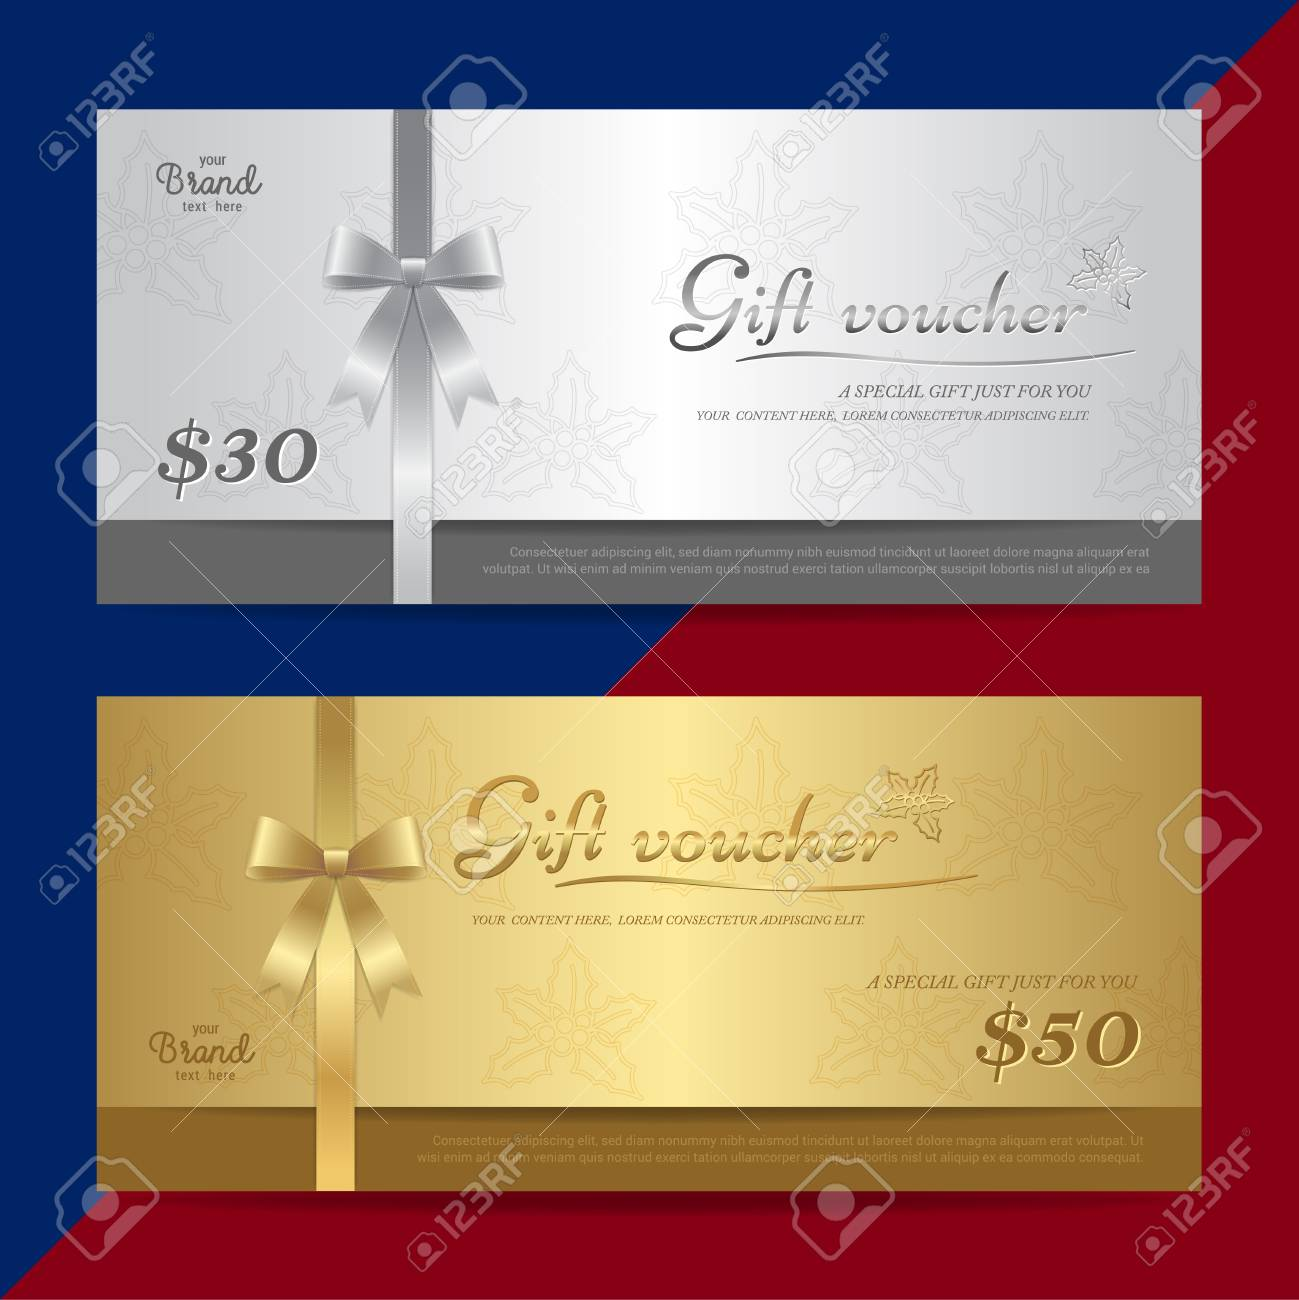 Gift Certificate Voucher Gift Card Or Cash Coupon Template Royalty Free Cliparts Vectors And Stock Illustration Image 93344624